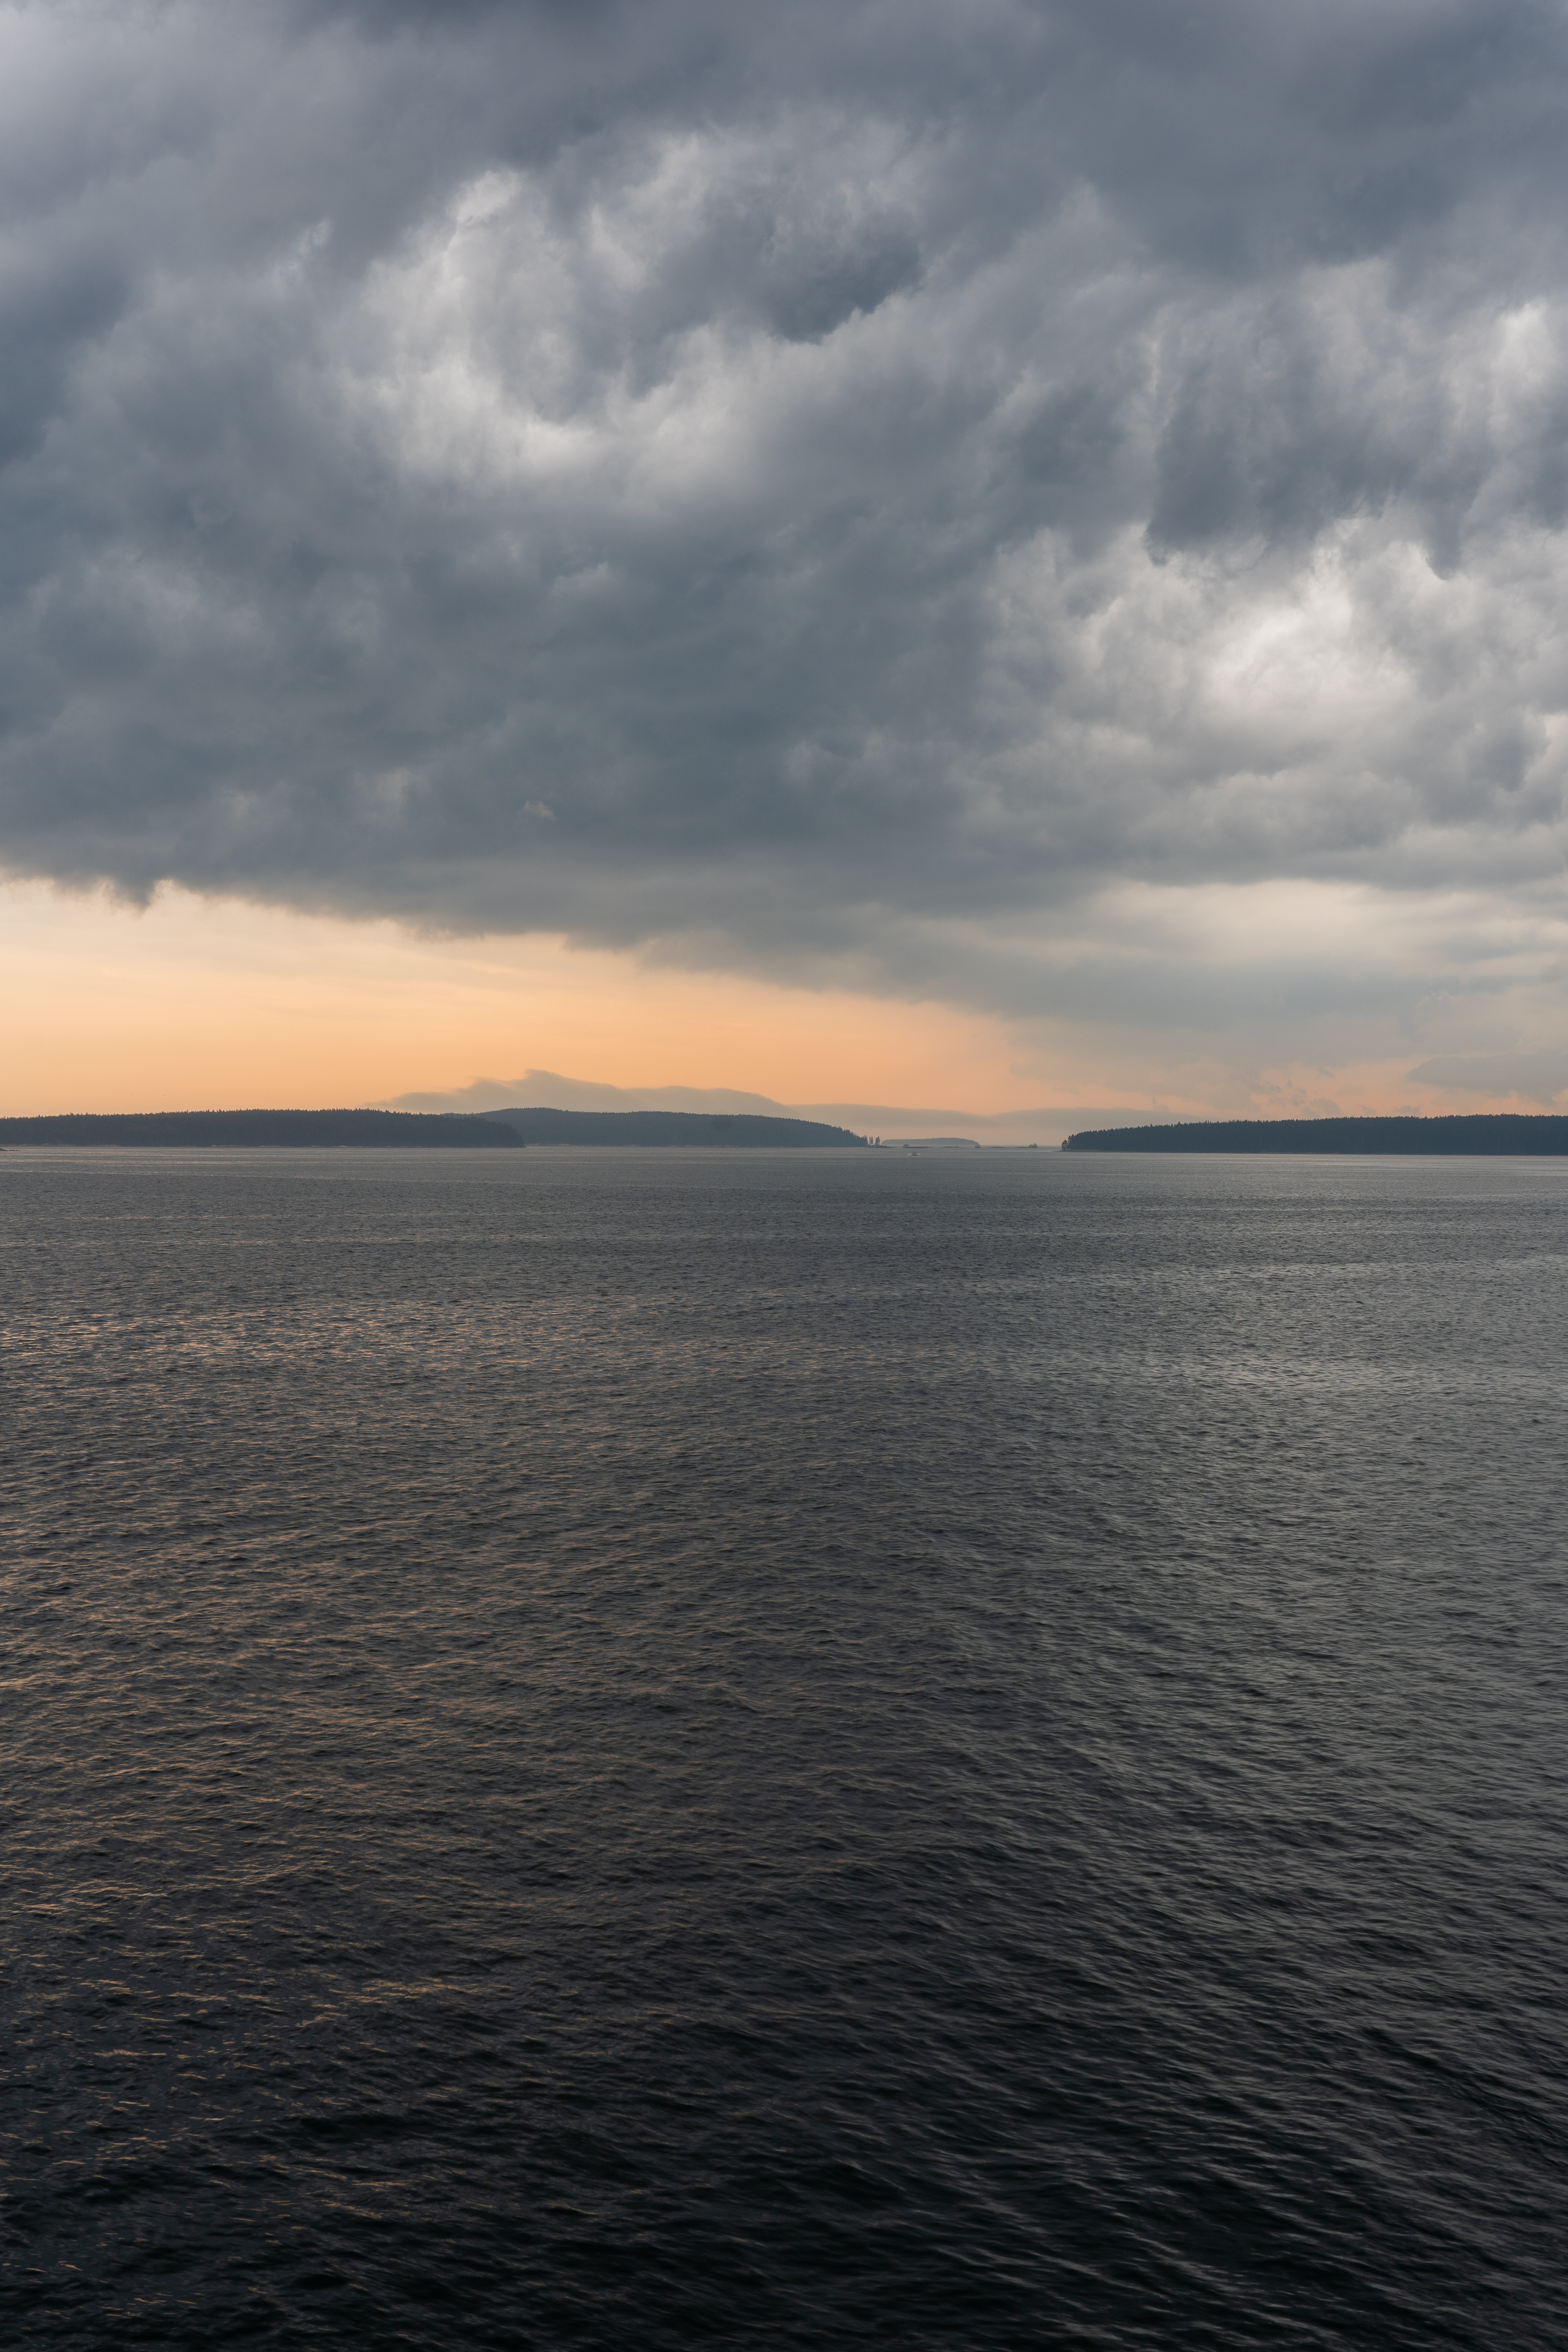 storm approaching at acadia national park author belikoff alexander